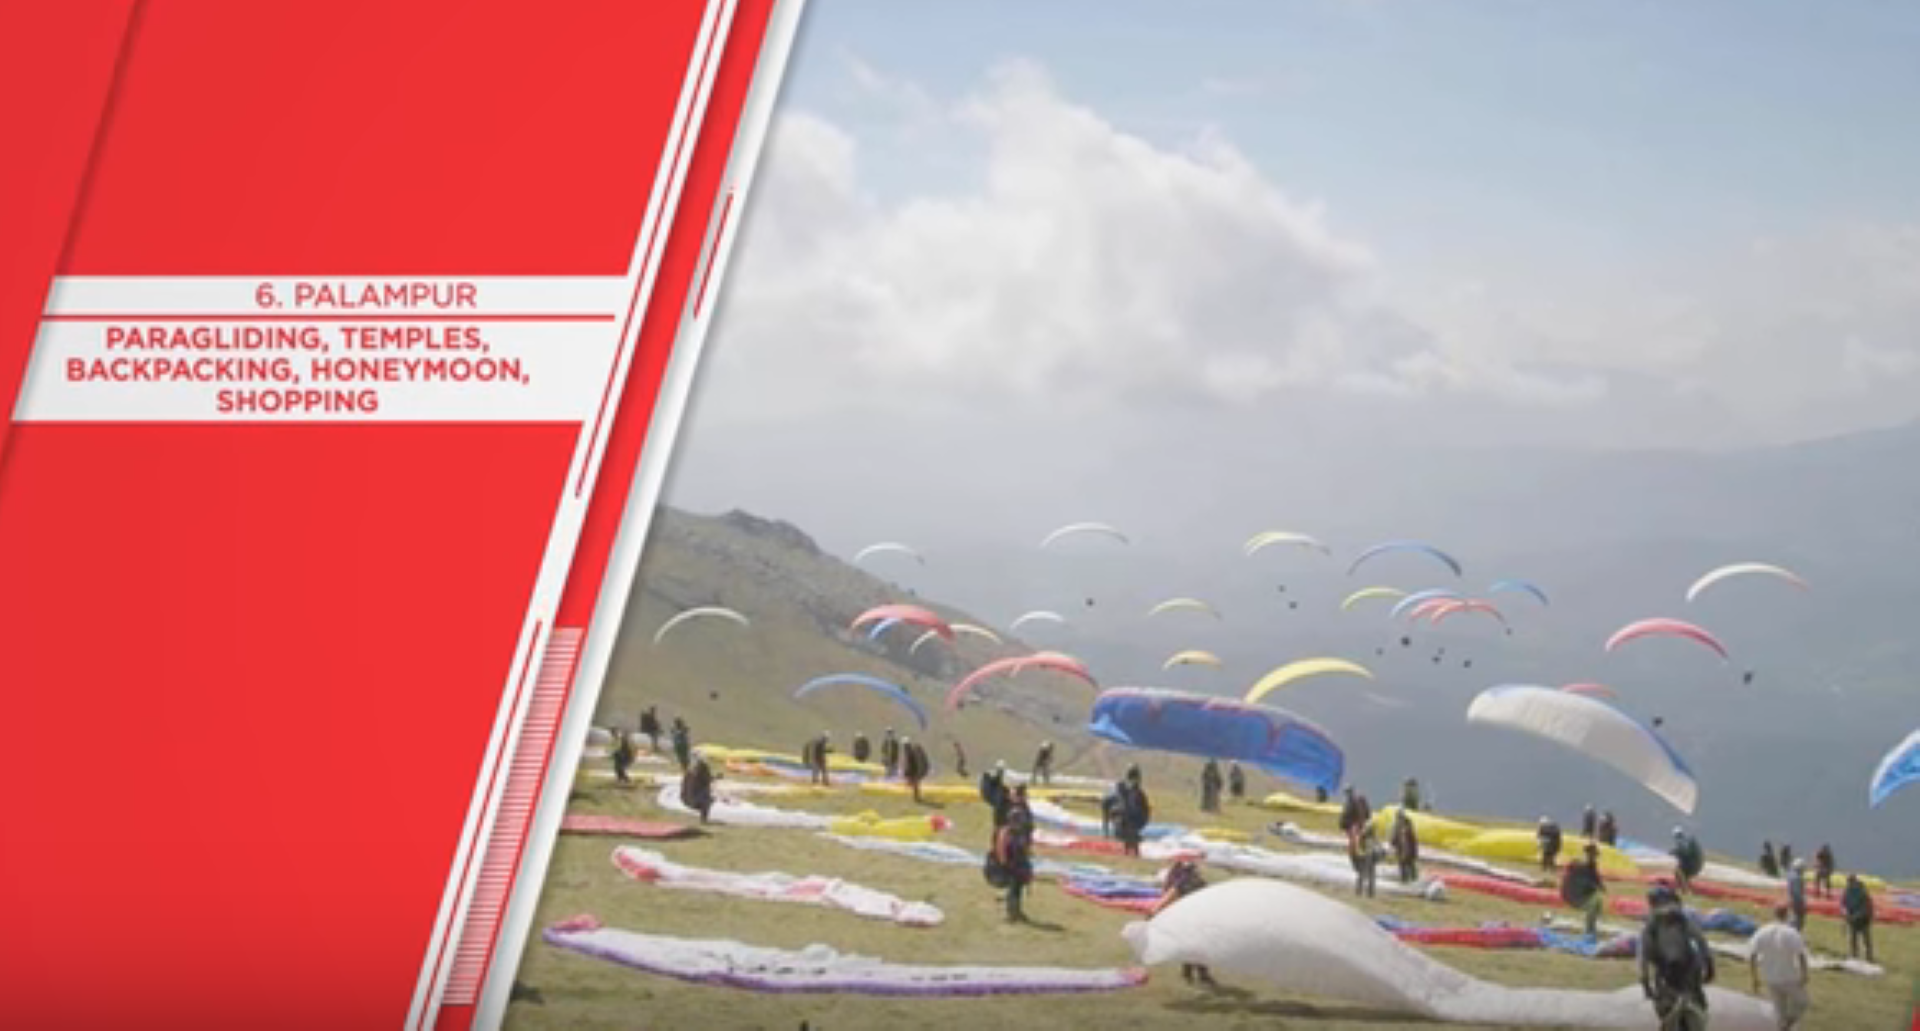 Paragliding tour by tempo traveller